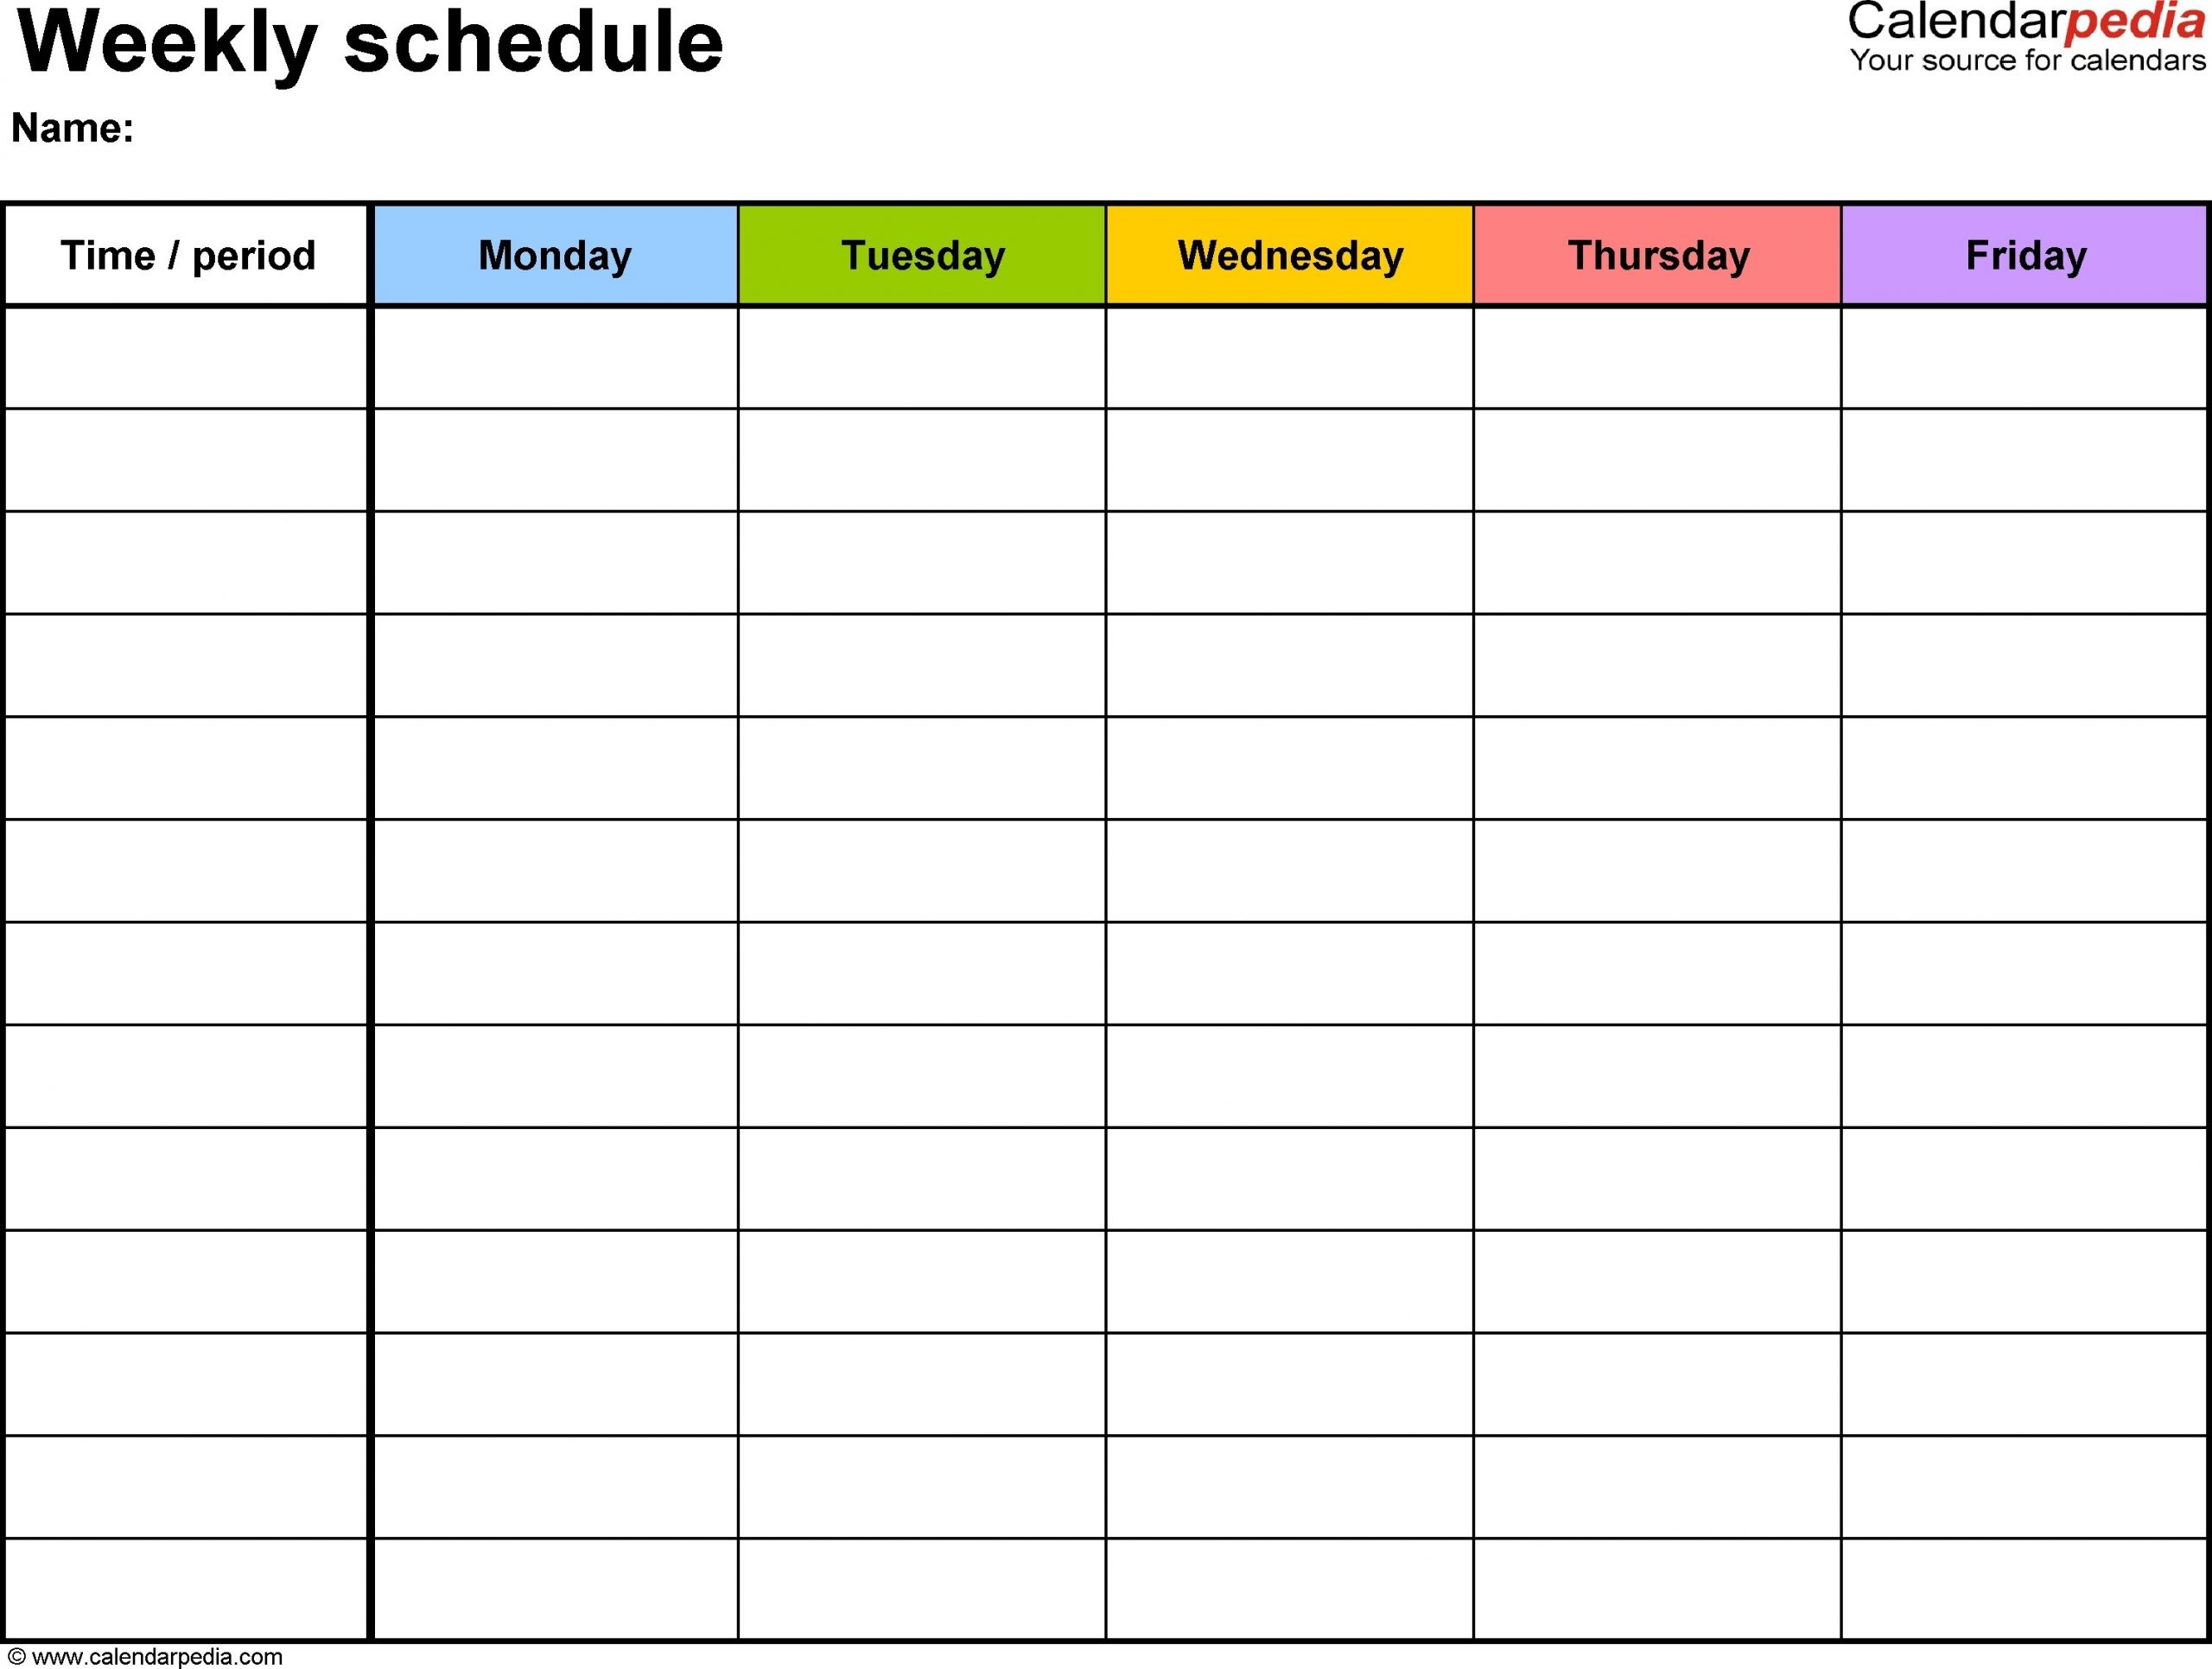 Printable Calendar With Time Slots :-Free Calendar Template Weekly Planner With Time Slots Pdf